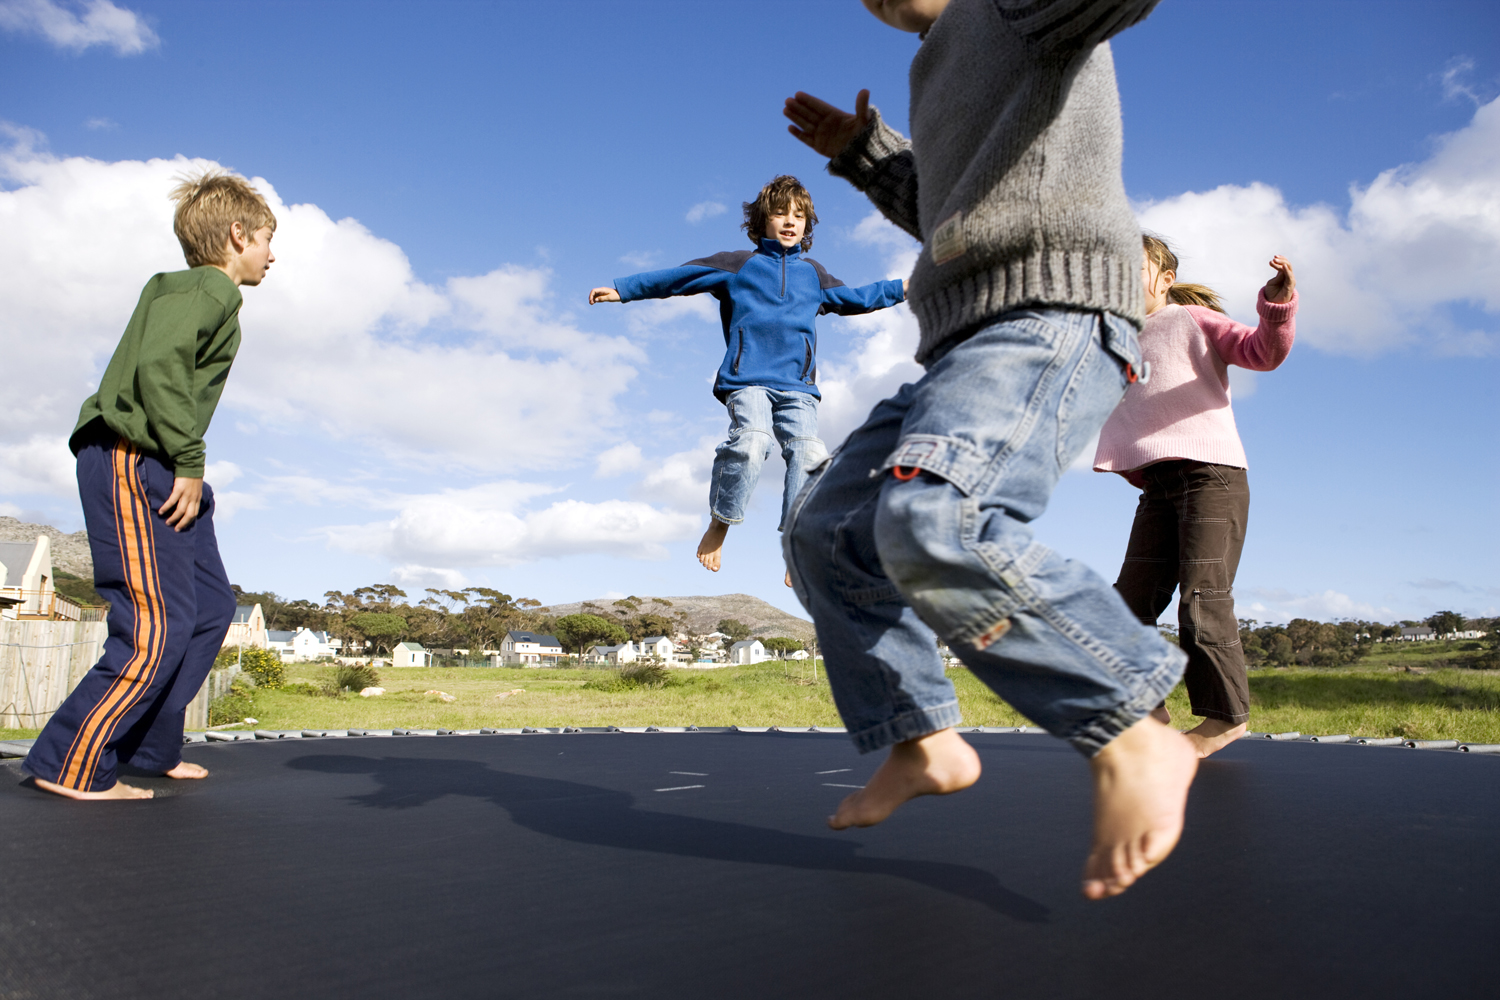 Trampolines are no place for kids, docs warn